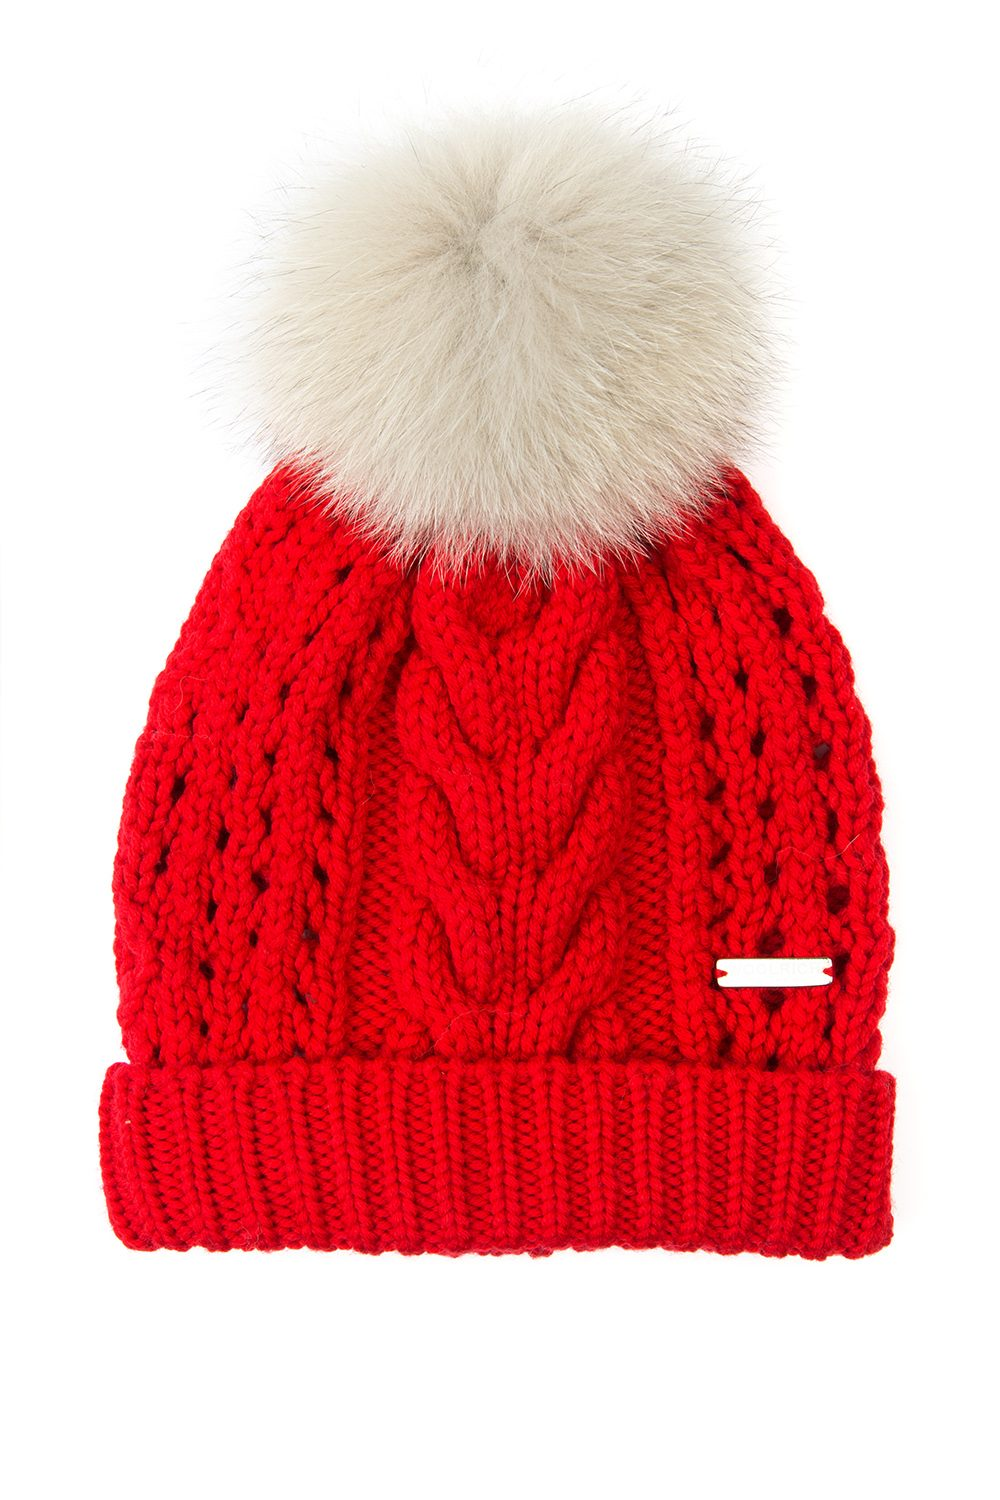 Woolrich Serenity Ladies Ribbed Bobble Hat Red - Linea Fashion 0a97e79040c